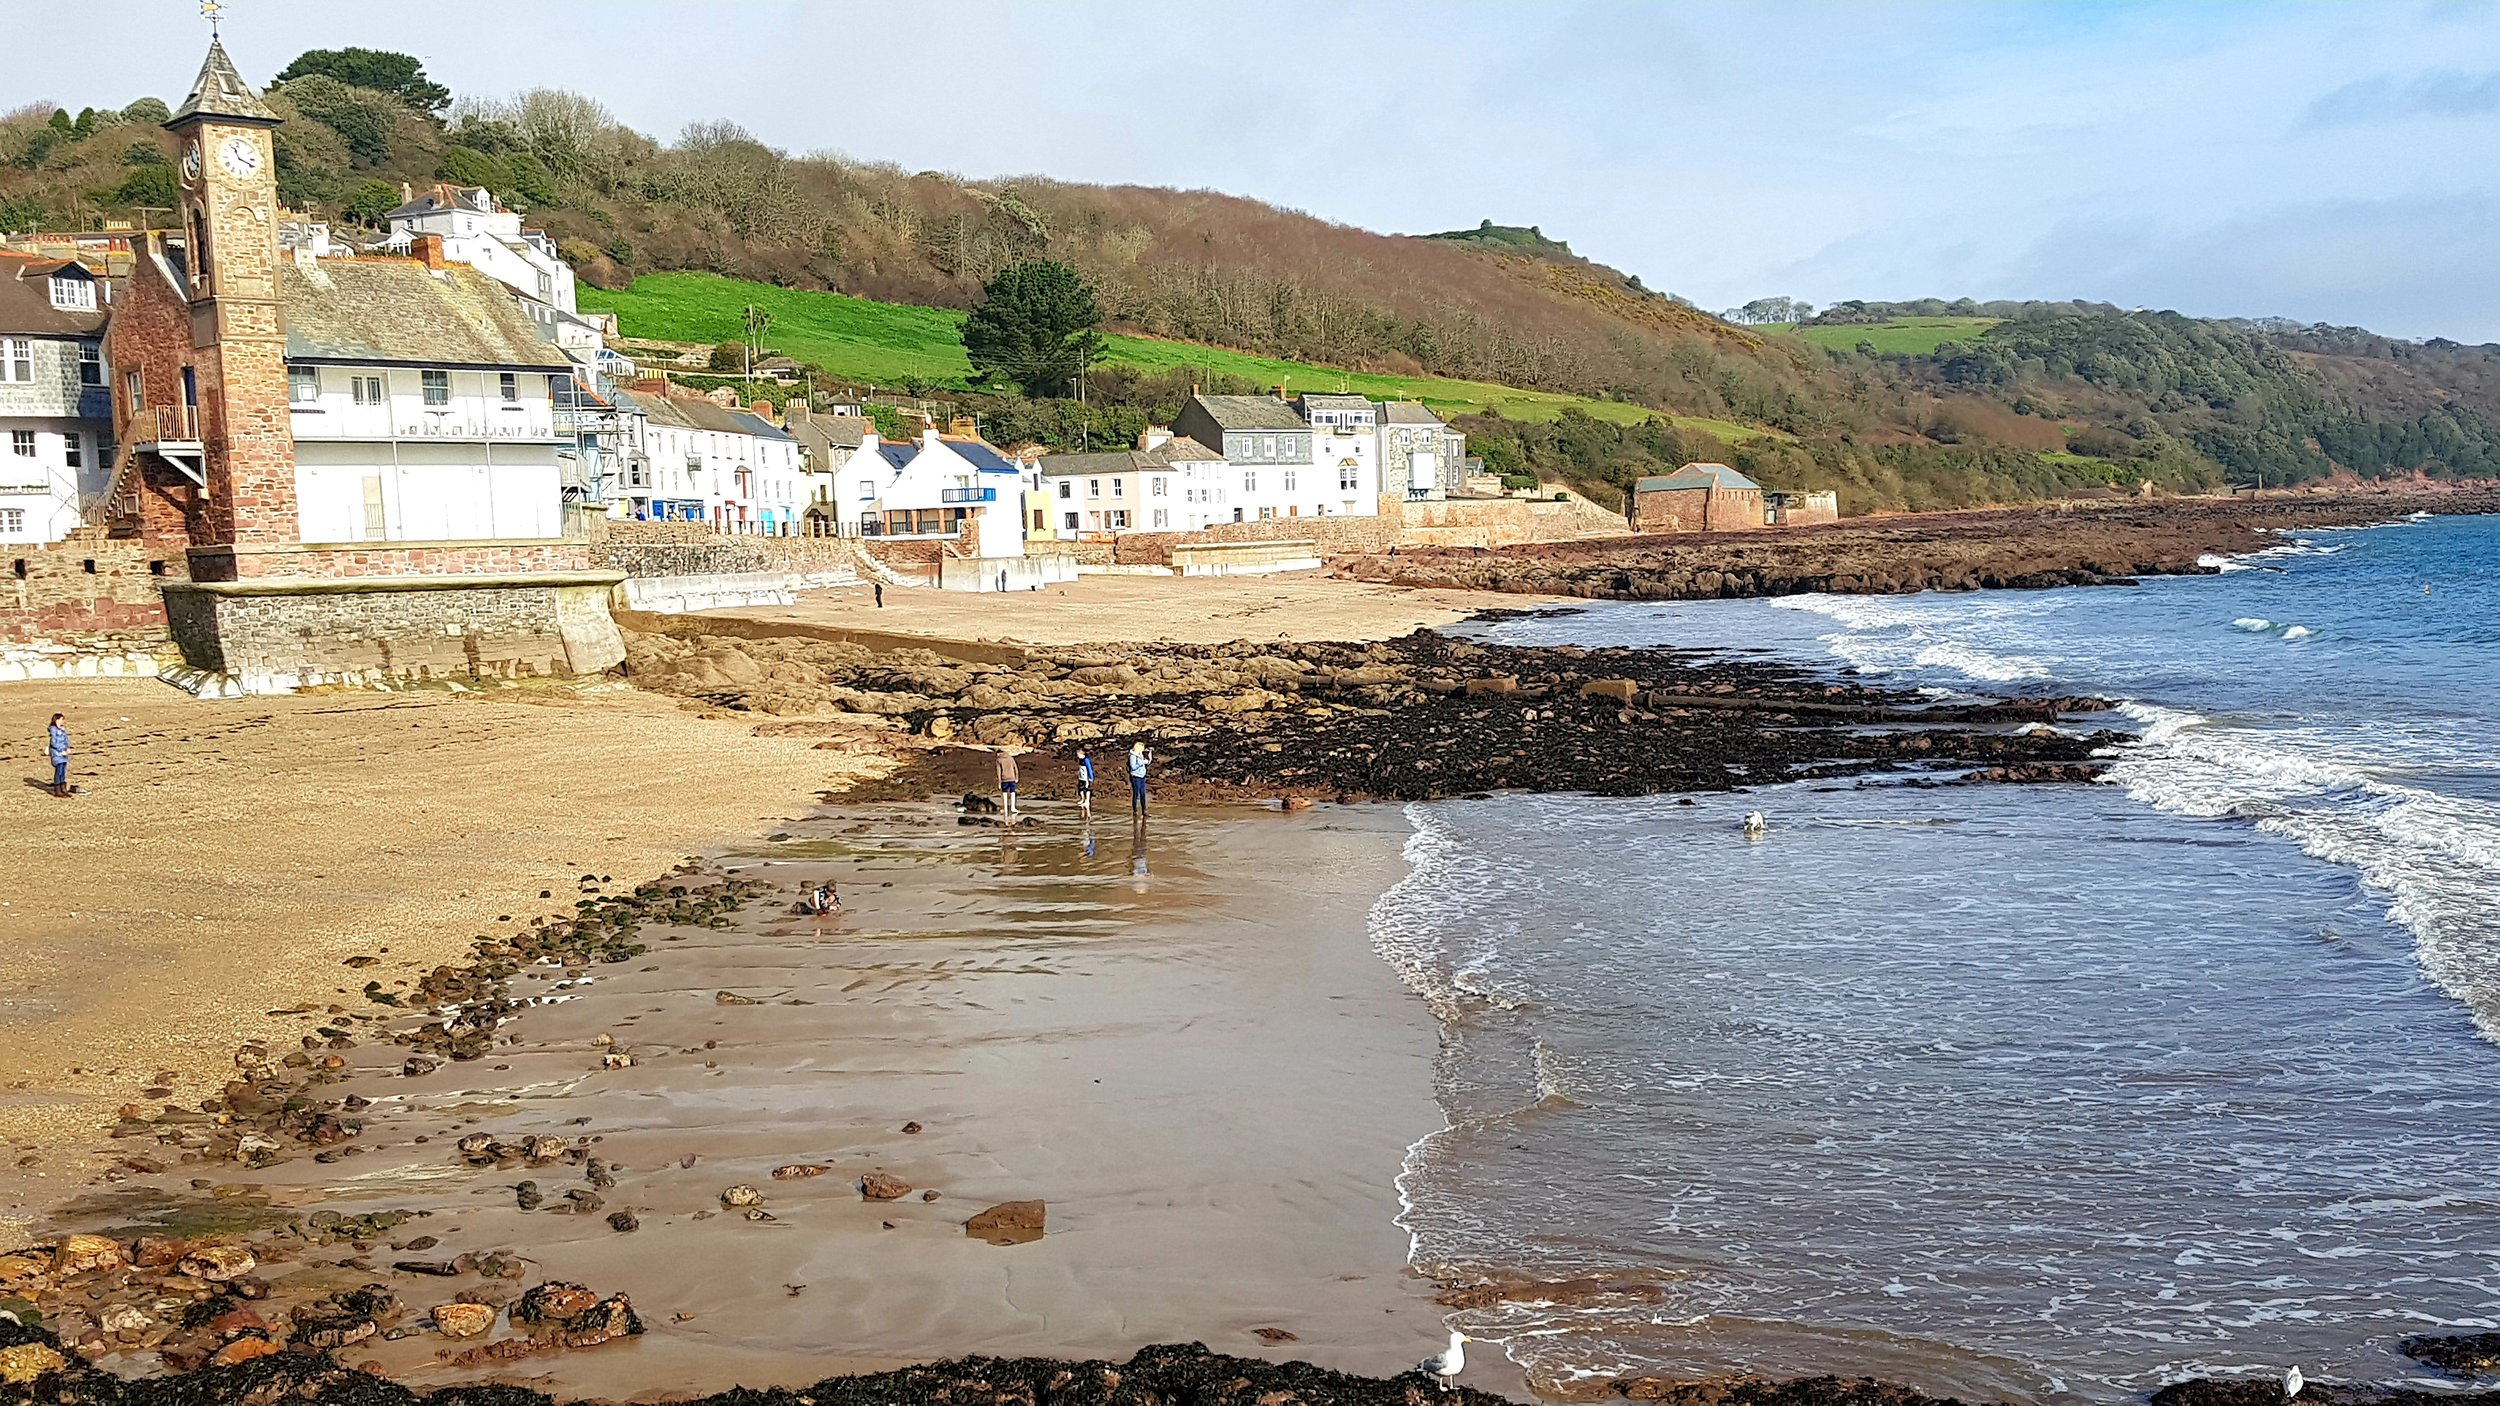 The Looe to Cremyll Cycle Trail will link the beautiful Rame Head section with Plymouth and our South Coast Eastern section at Looe